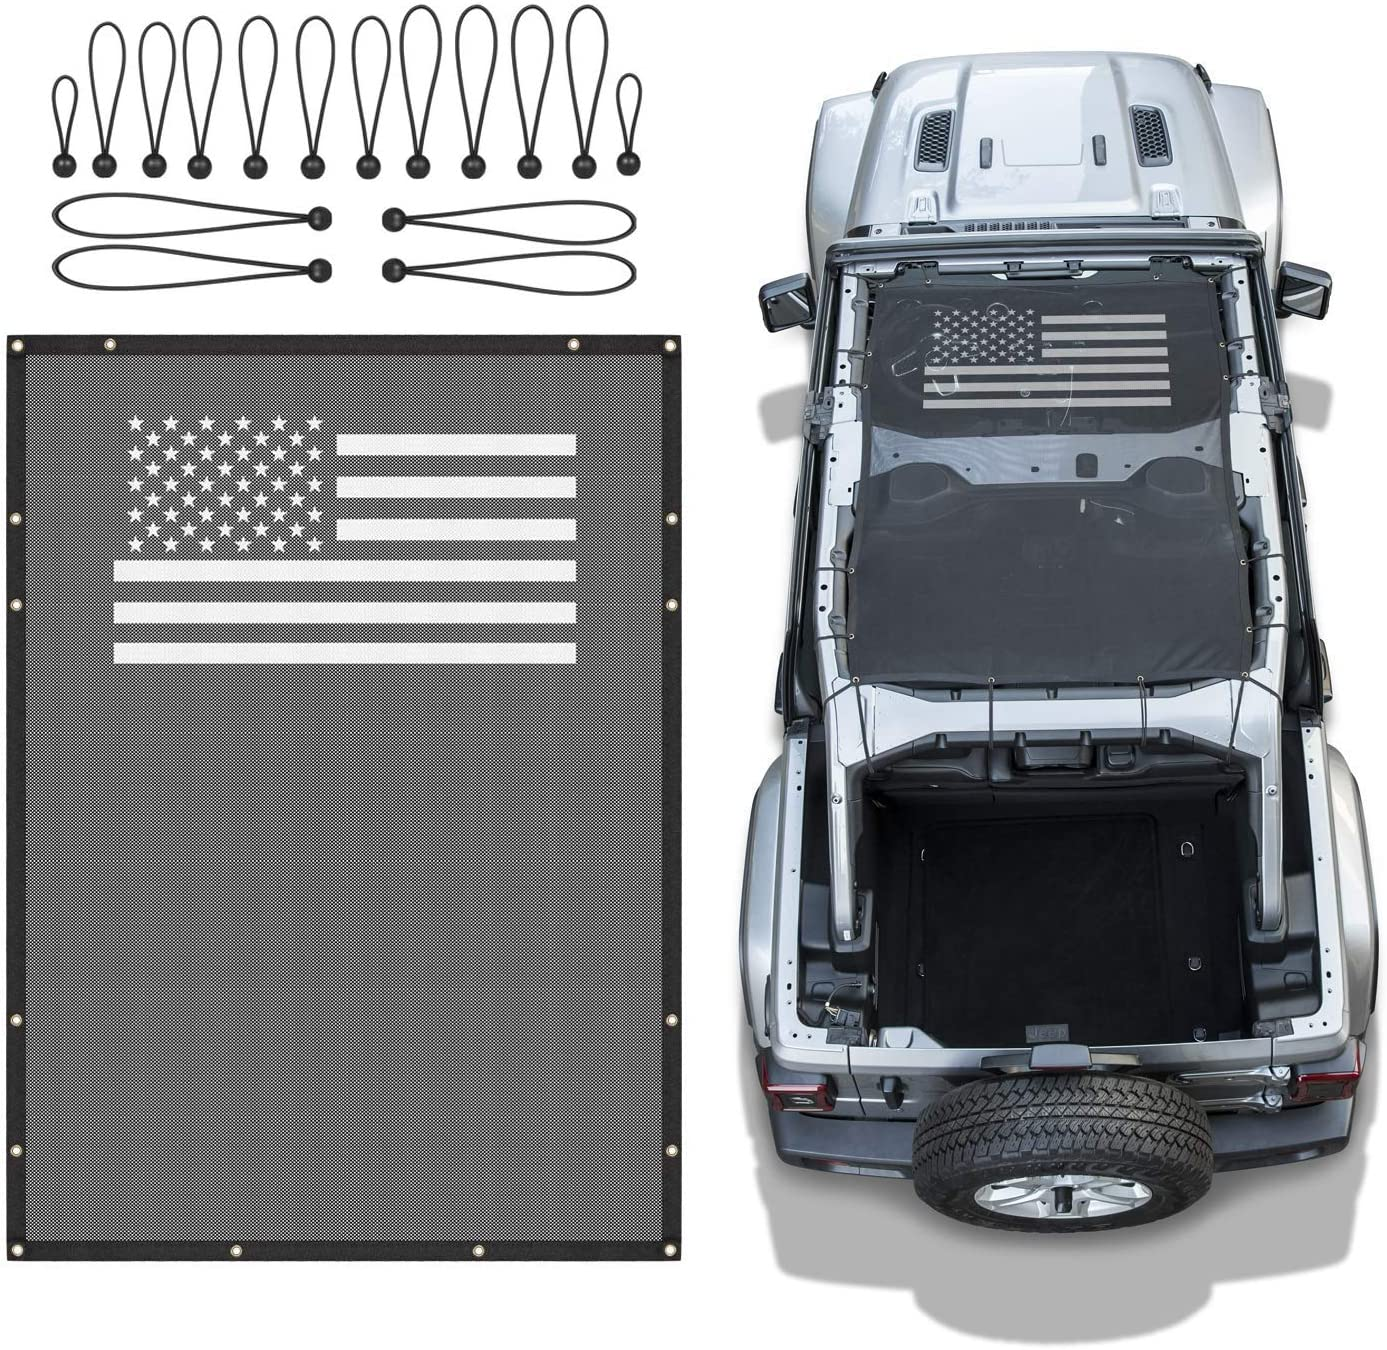 Black bestaoo Polyester Top Cover Provides UV Sun Protection for Jeep Wrangle JL 2018-2020 Sunshade Mesh Top Cover for Jeep Wrangle JL 4-Door